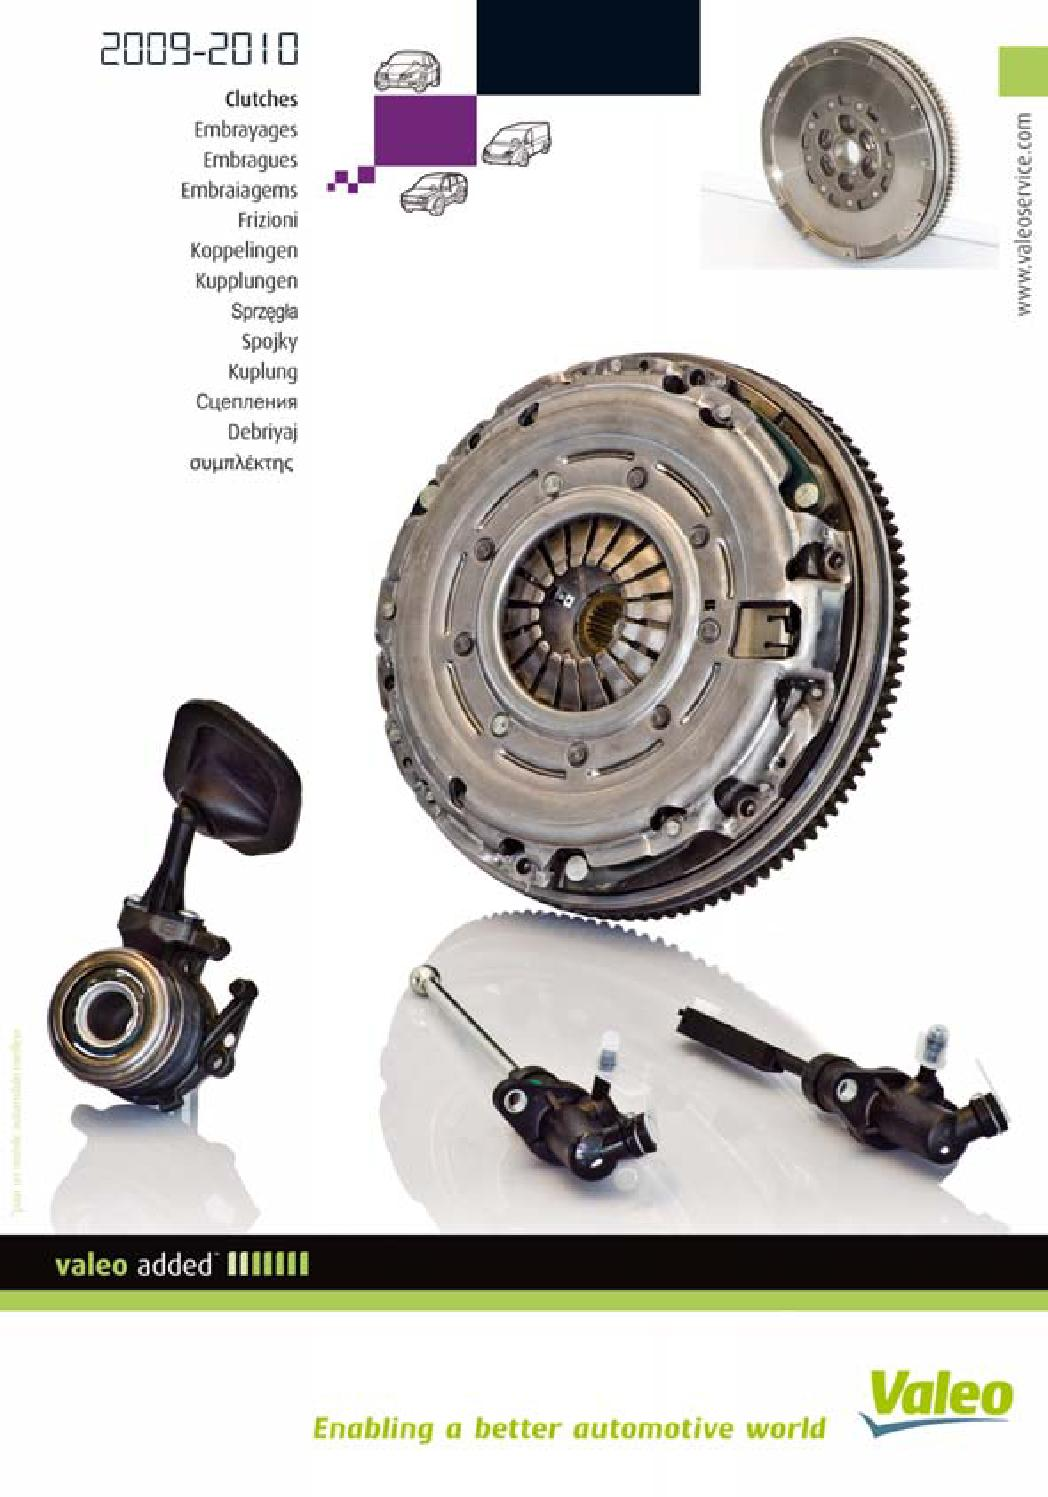 valeo embragues 1 by motor diper   issuu